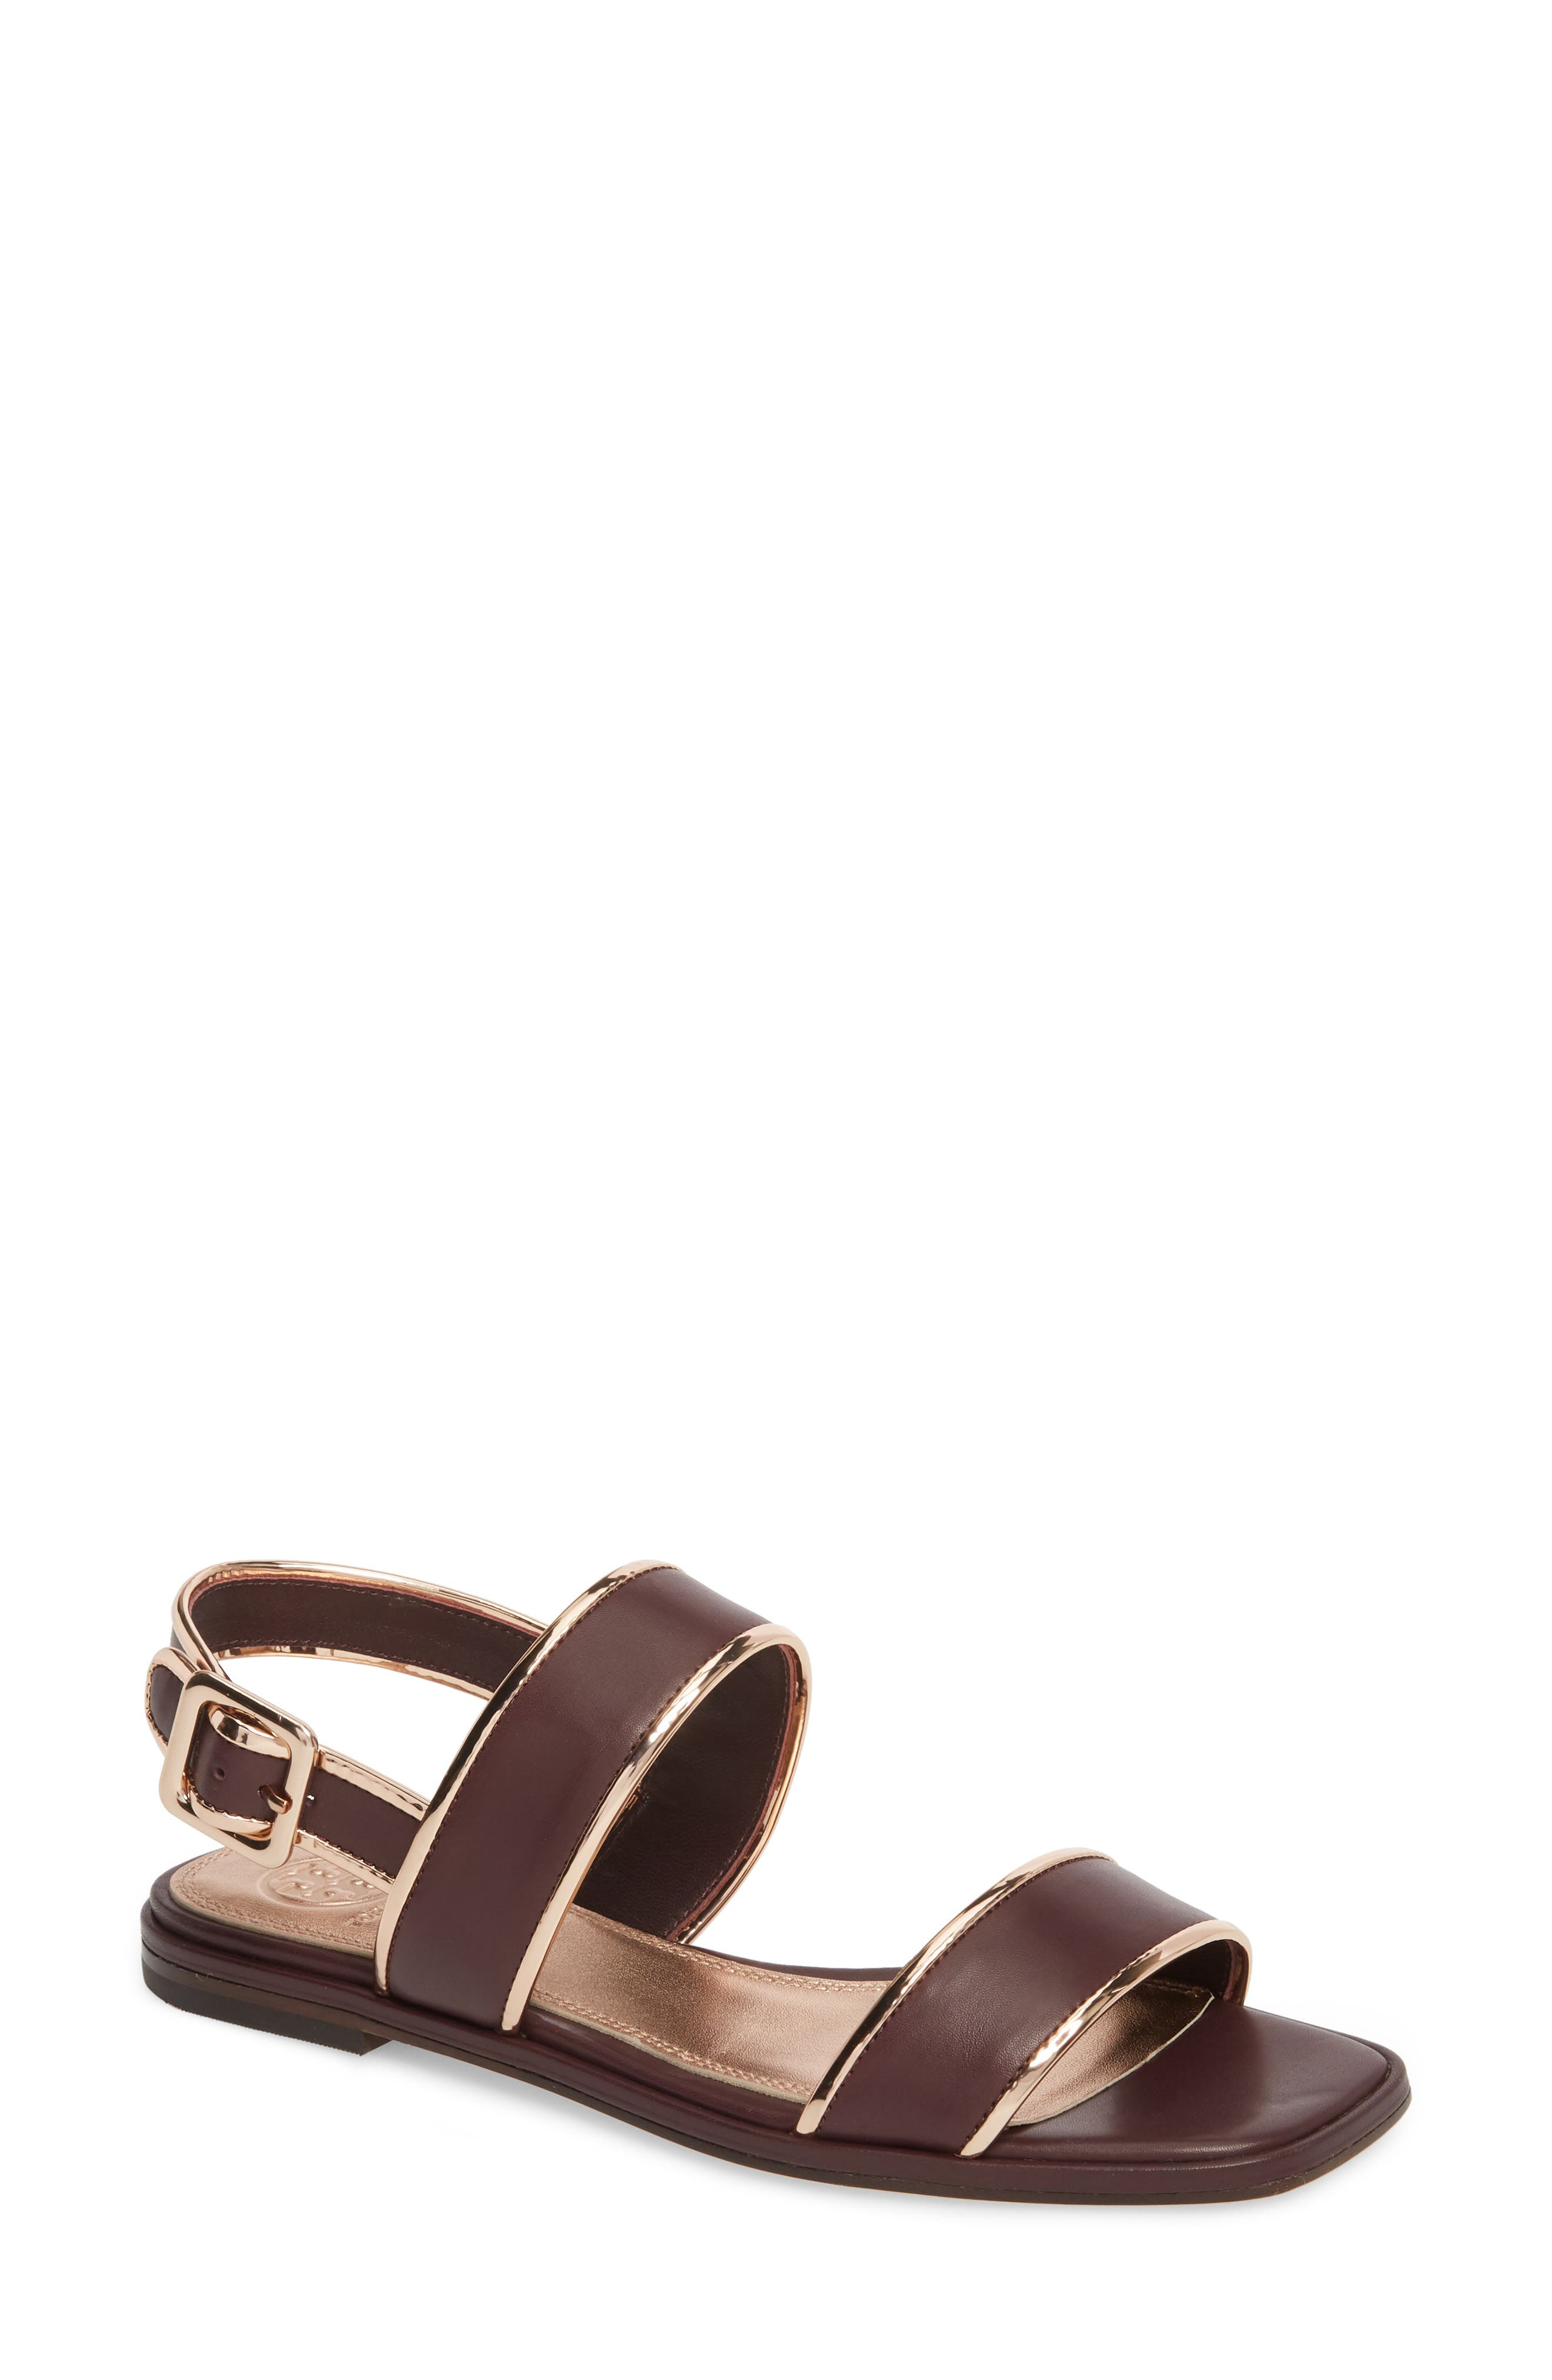 Delaney Double Strap Sandal,                             Main thumbnail 4, color,